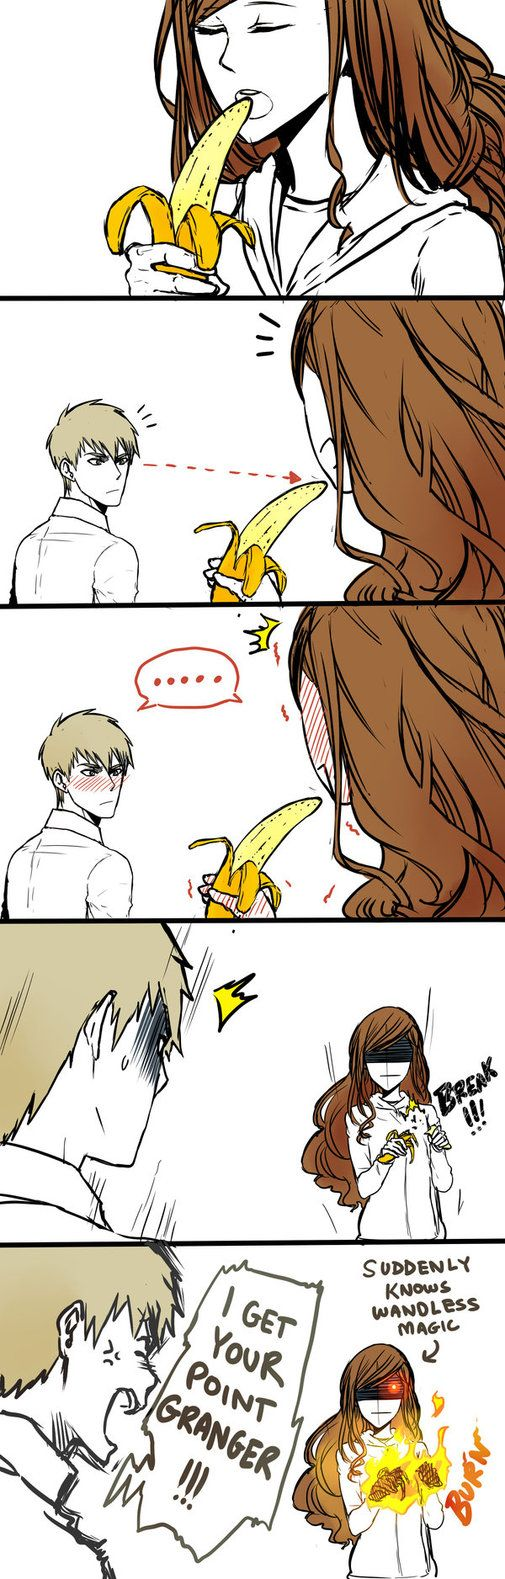 Dramione - Girl and Banana by fingernailtreez on DeviantArt